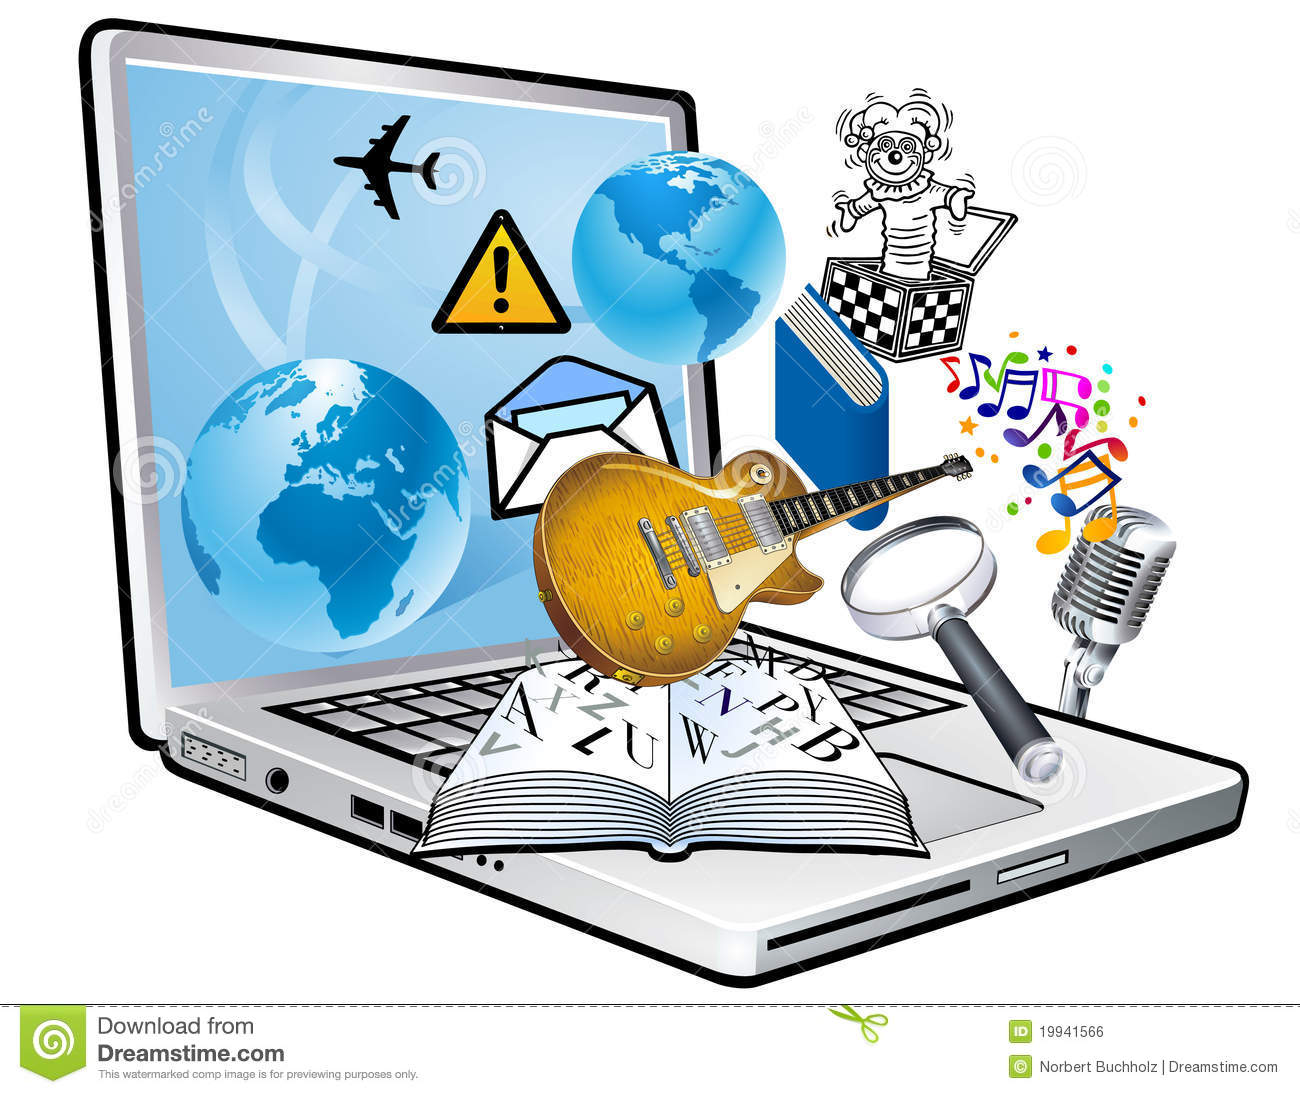 Information technology clipart 5 » Clipart Station.